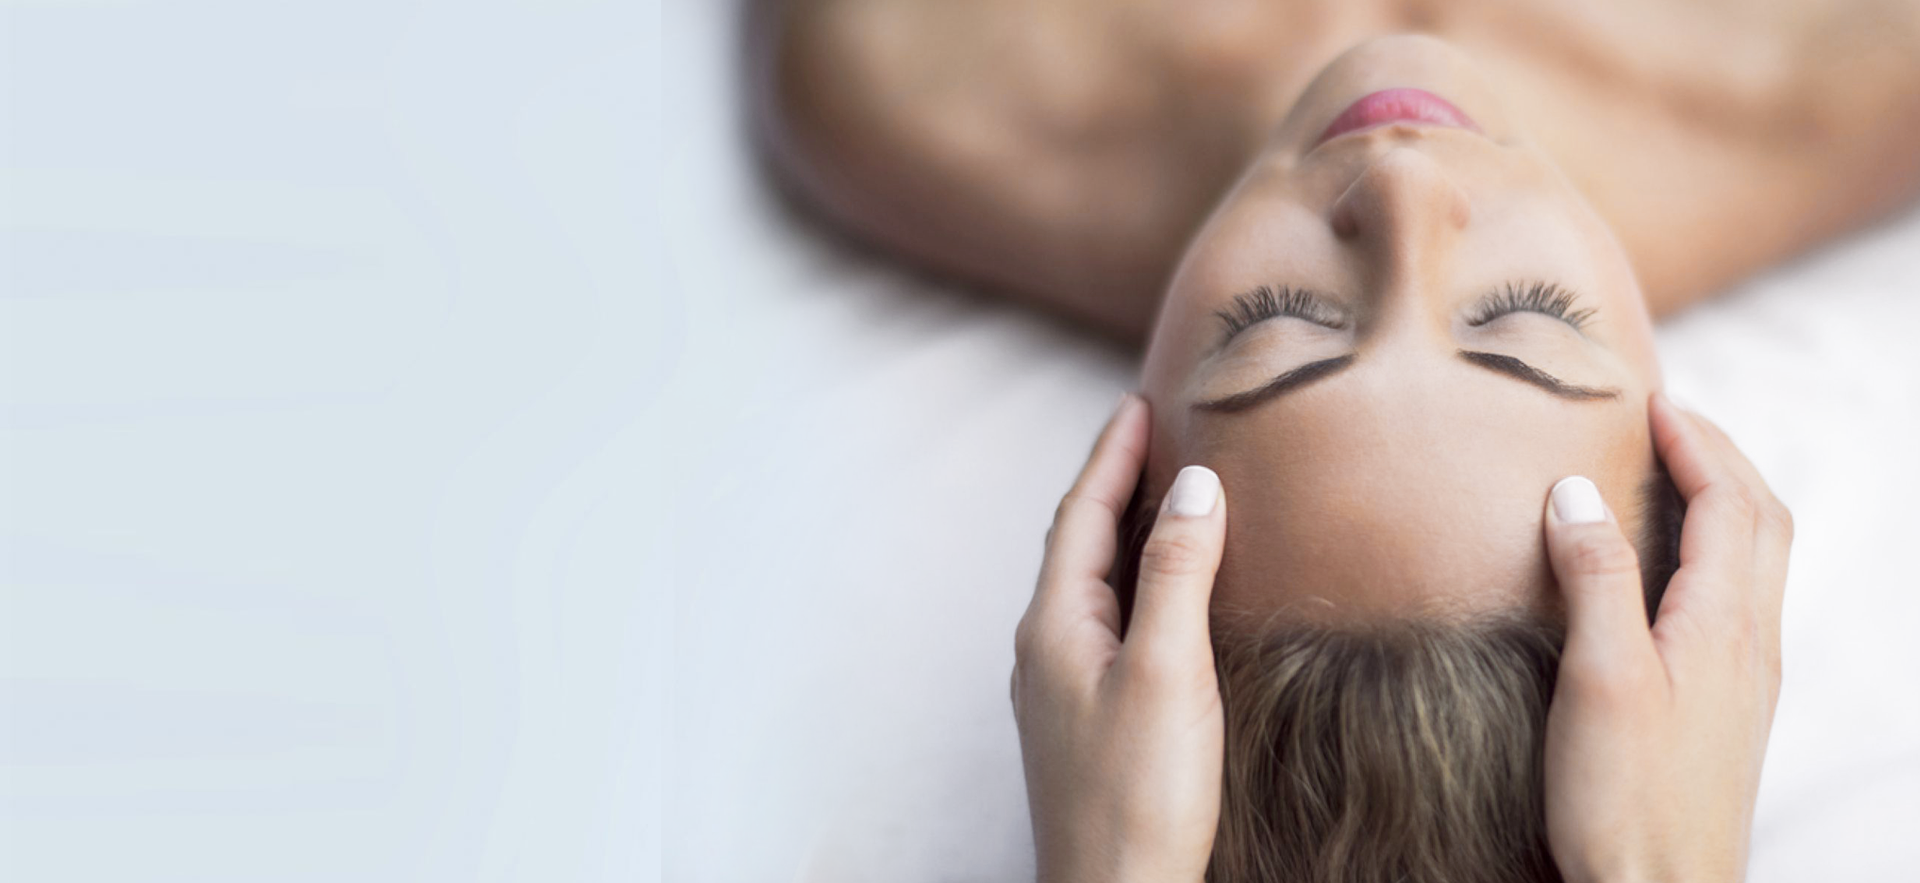 Craniosacral Therapy-Studio 7 therapies